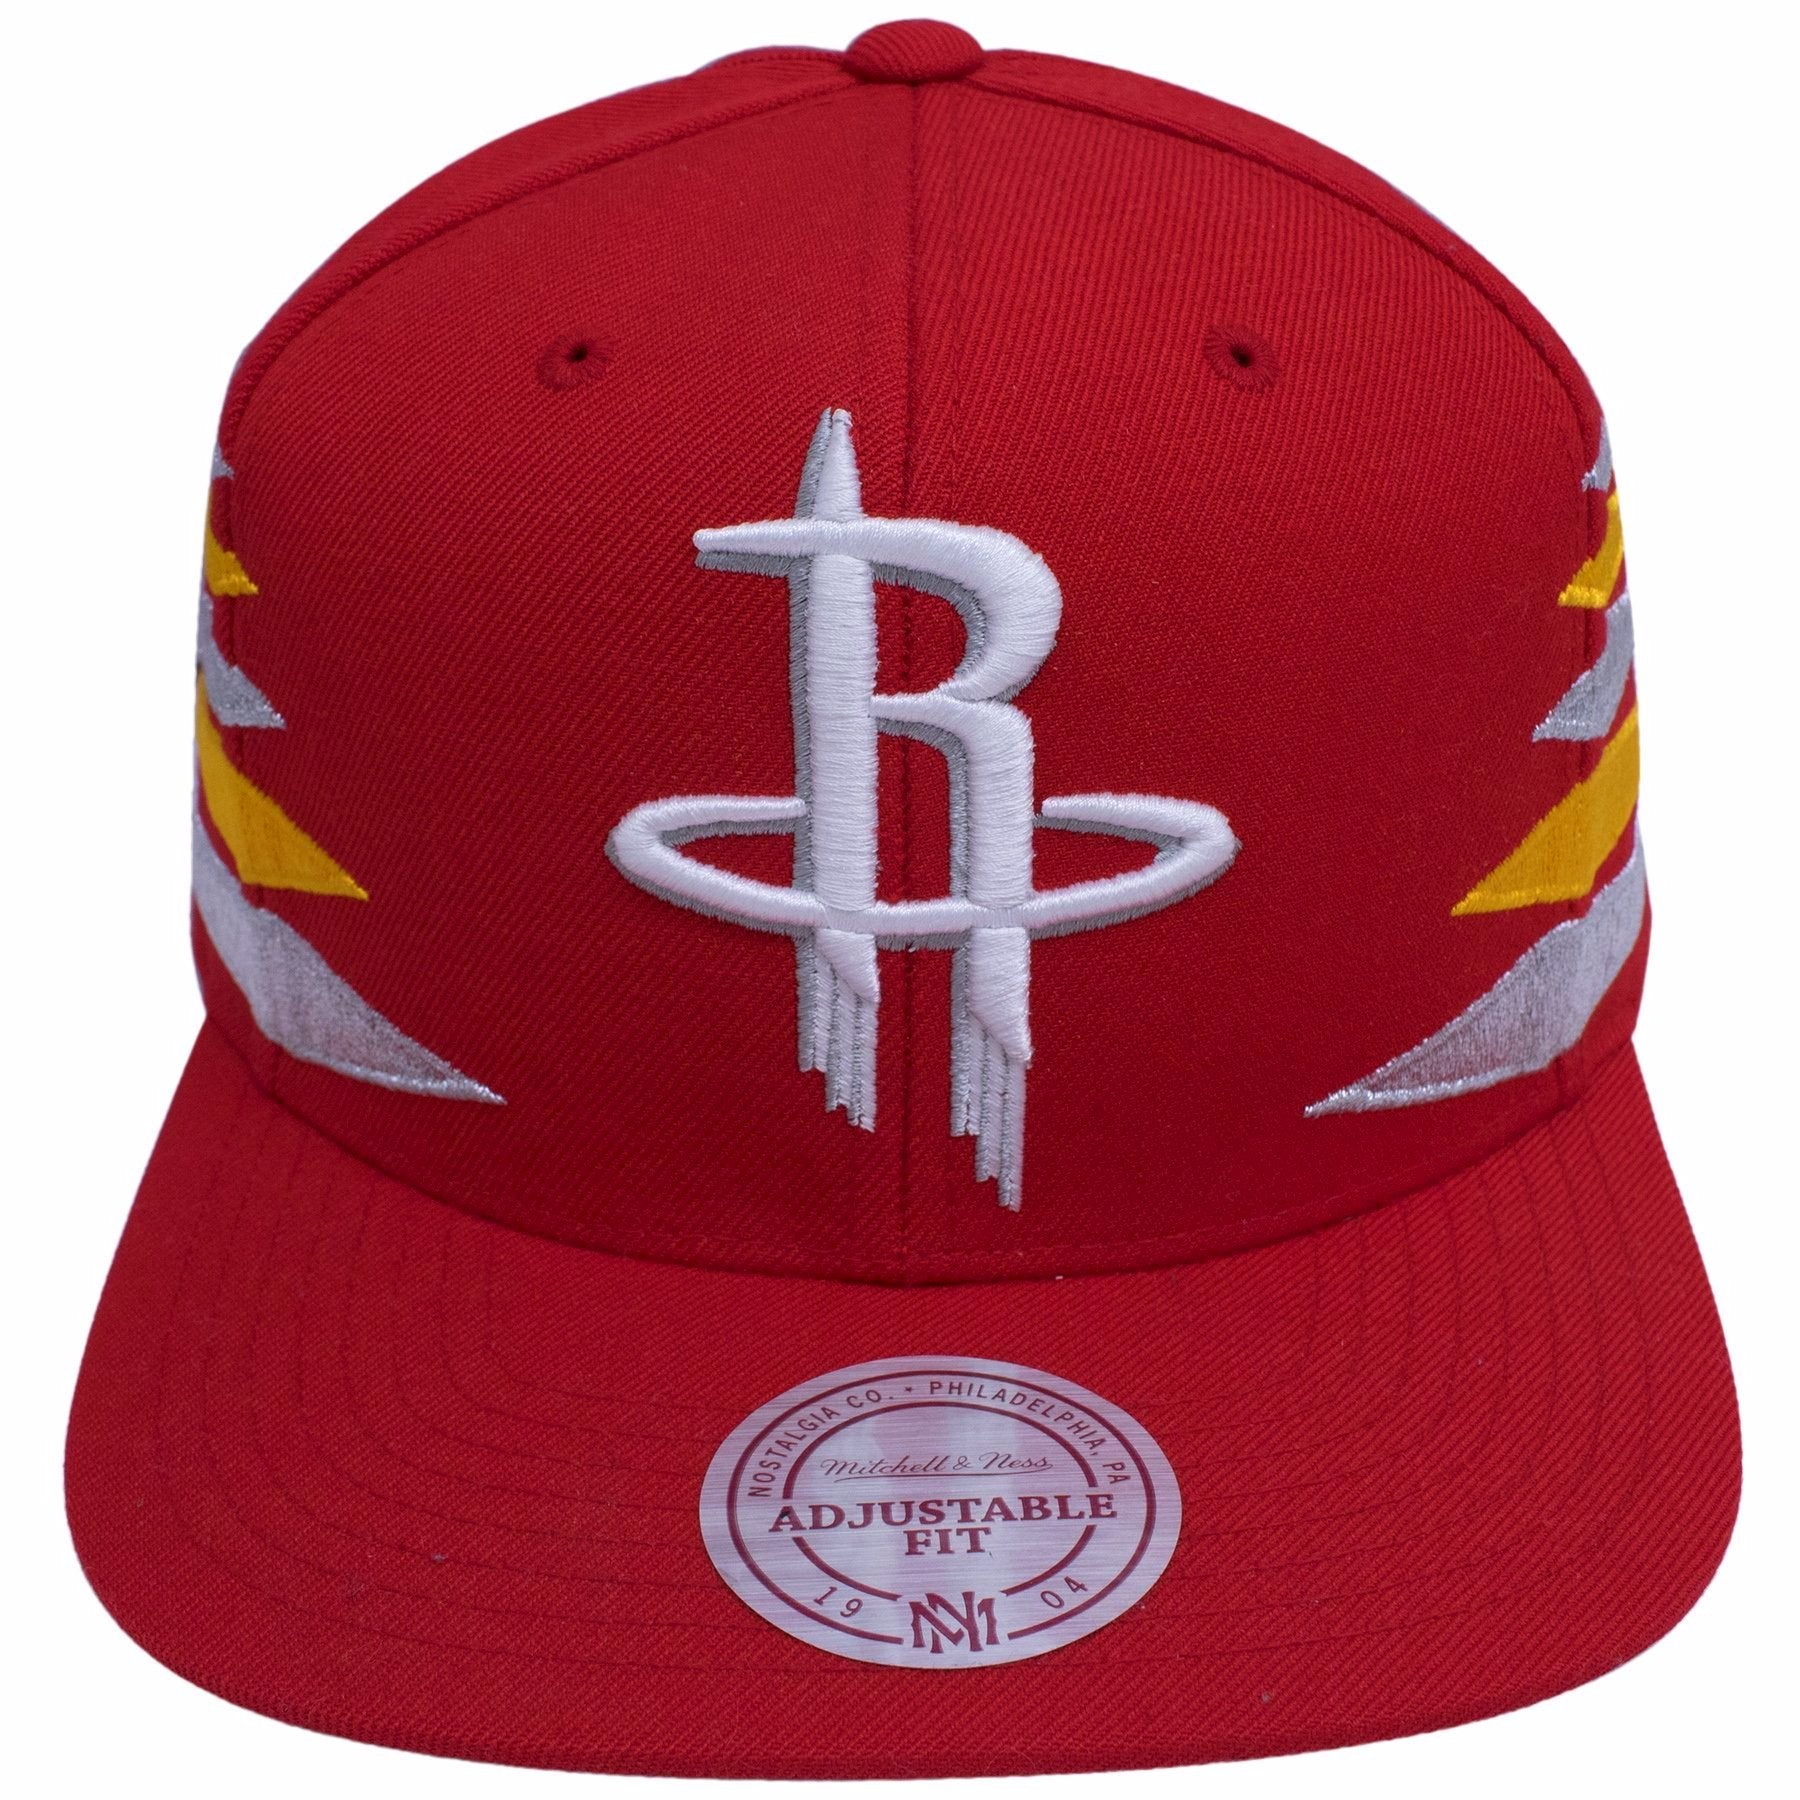 78aa0bda511b9f the houston rockets diamond spikes dad hat is solid red with a houston  rockets logo embroidered